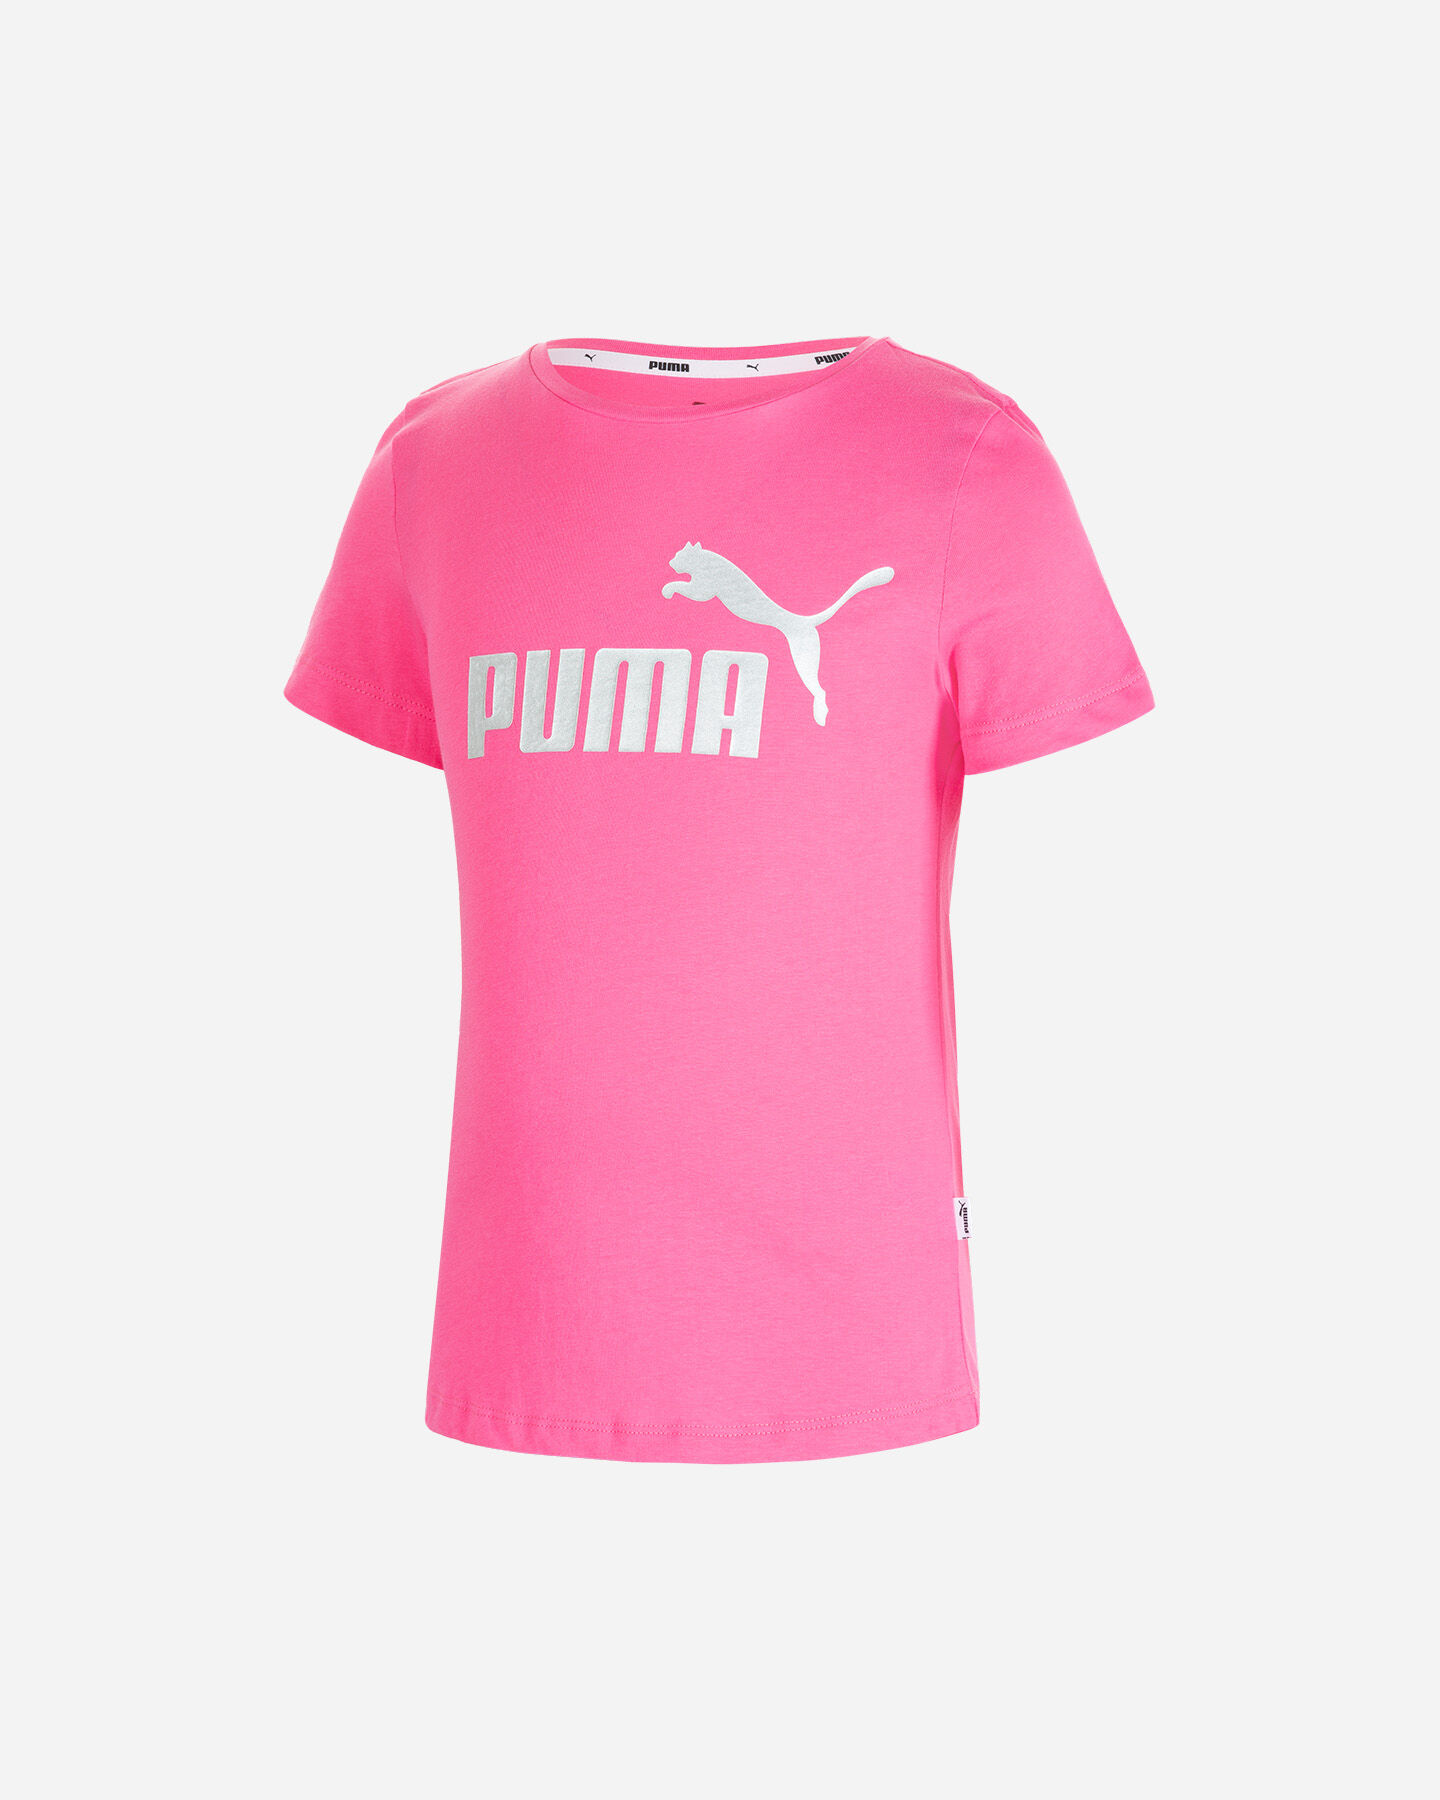 T-Shirt PUMA MC BIG LOGO JR S5234894 scatto 0